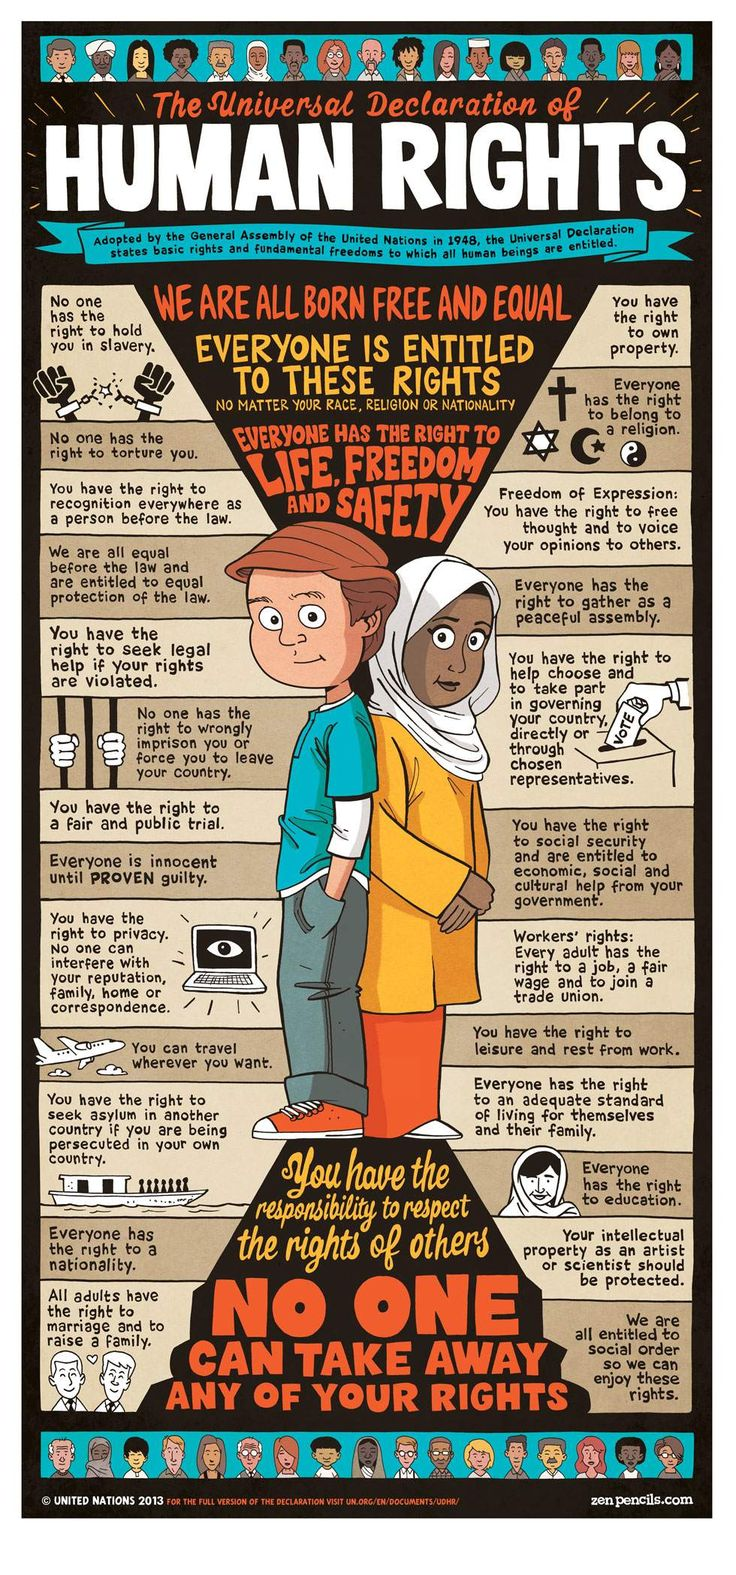 Sociology is based on equality, and cooperation among people. The declaration of human rights is a great example of sociological work because it aims to reduce injustices among all individuals. Our world is becoming more globalized , meaning we must be able to agree on a set of values and norms that will protect everyone.